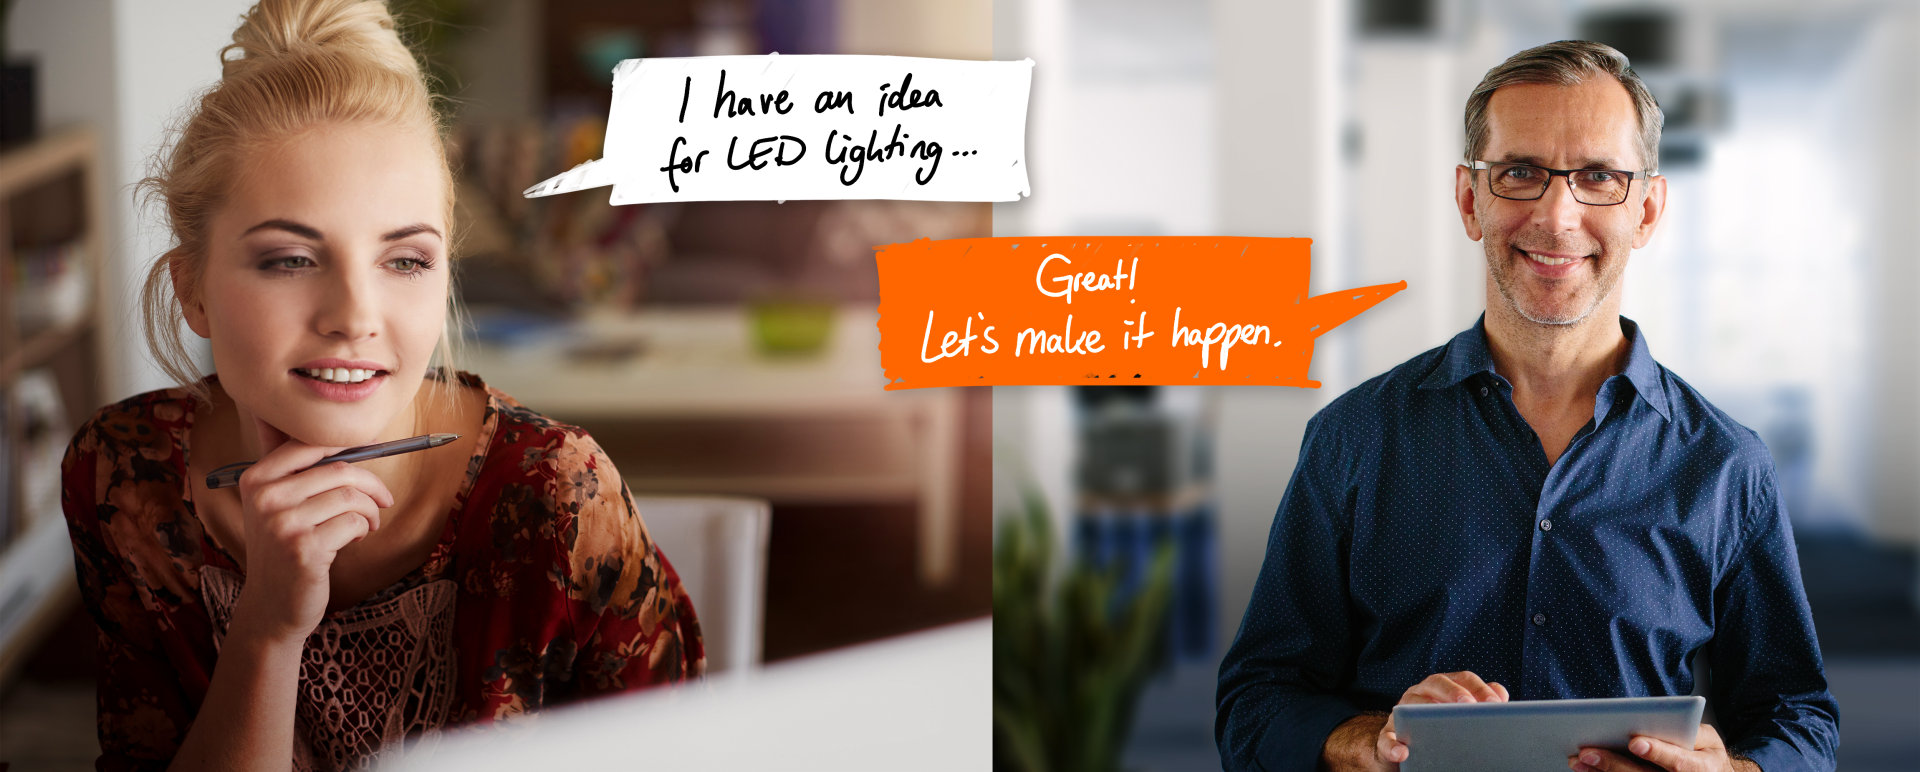 LED Light for you - You have the idea, we have the solution. - Ask us!